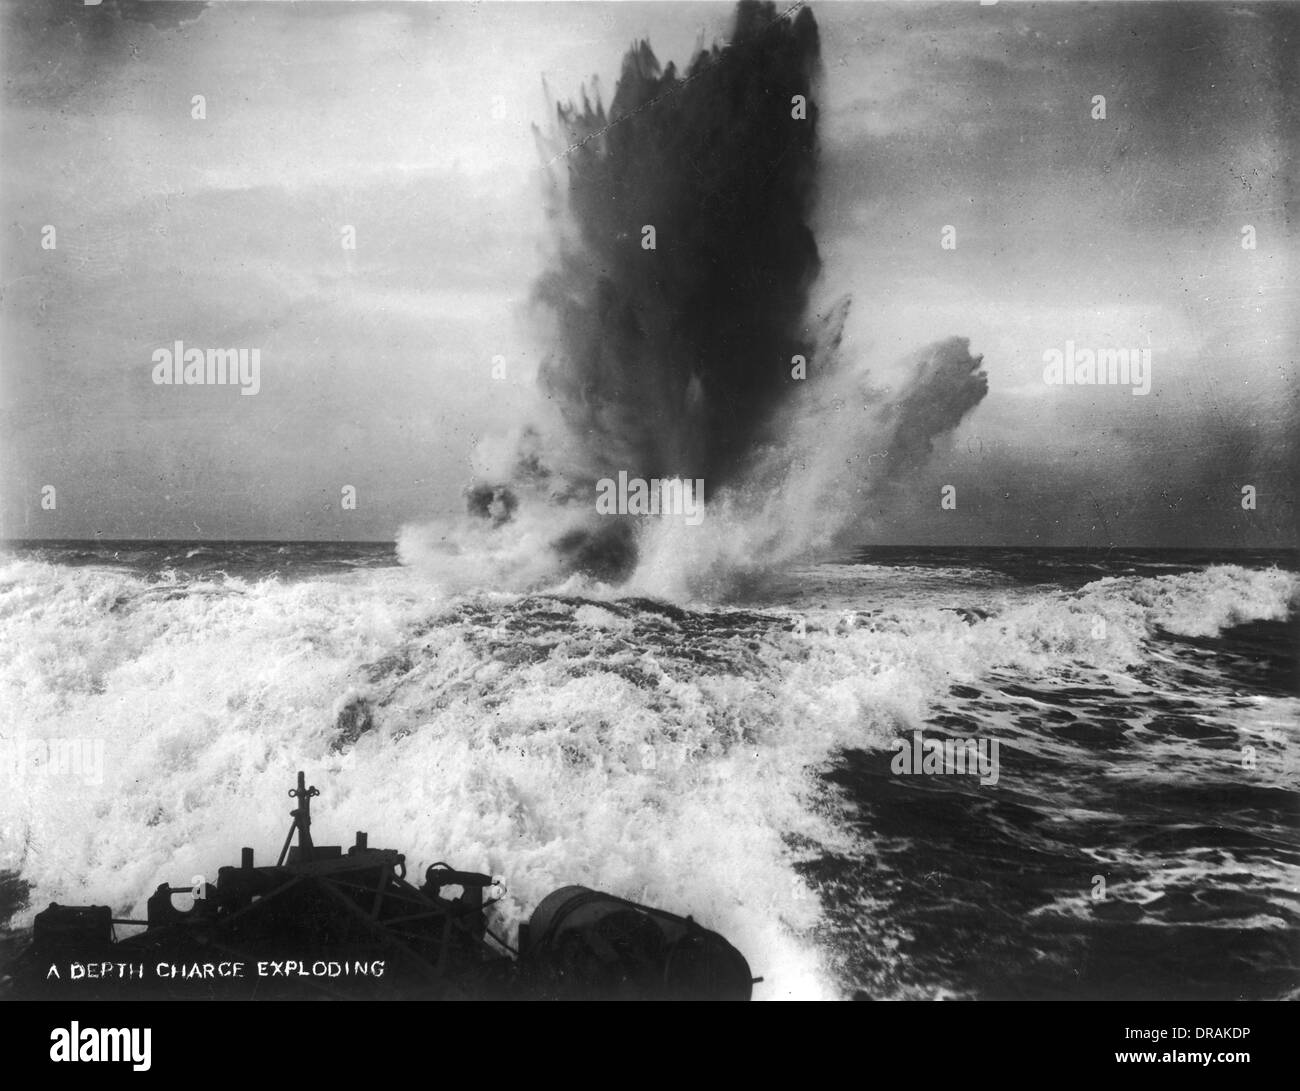 A Depth Charge Exploding - Stock Image